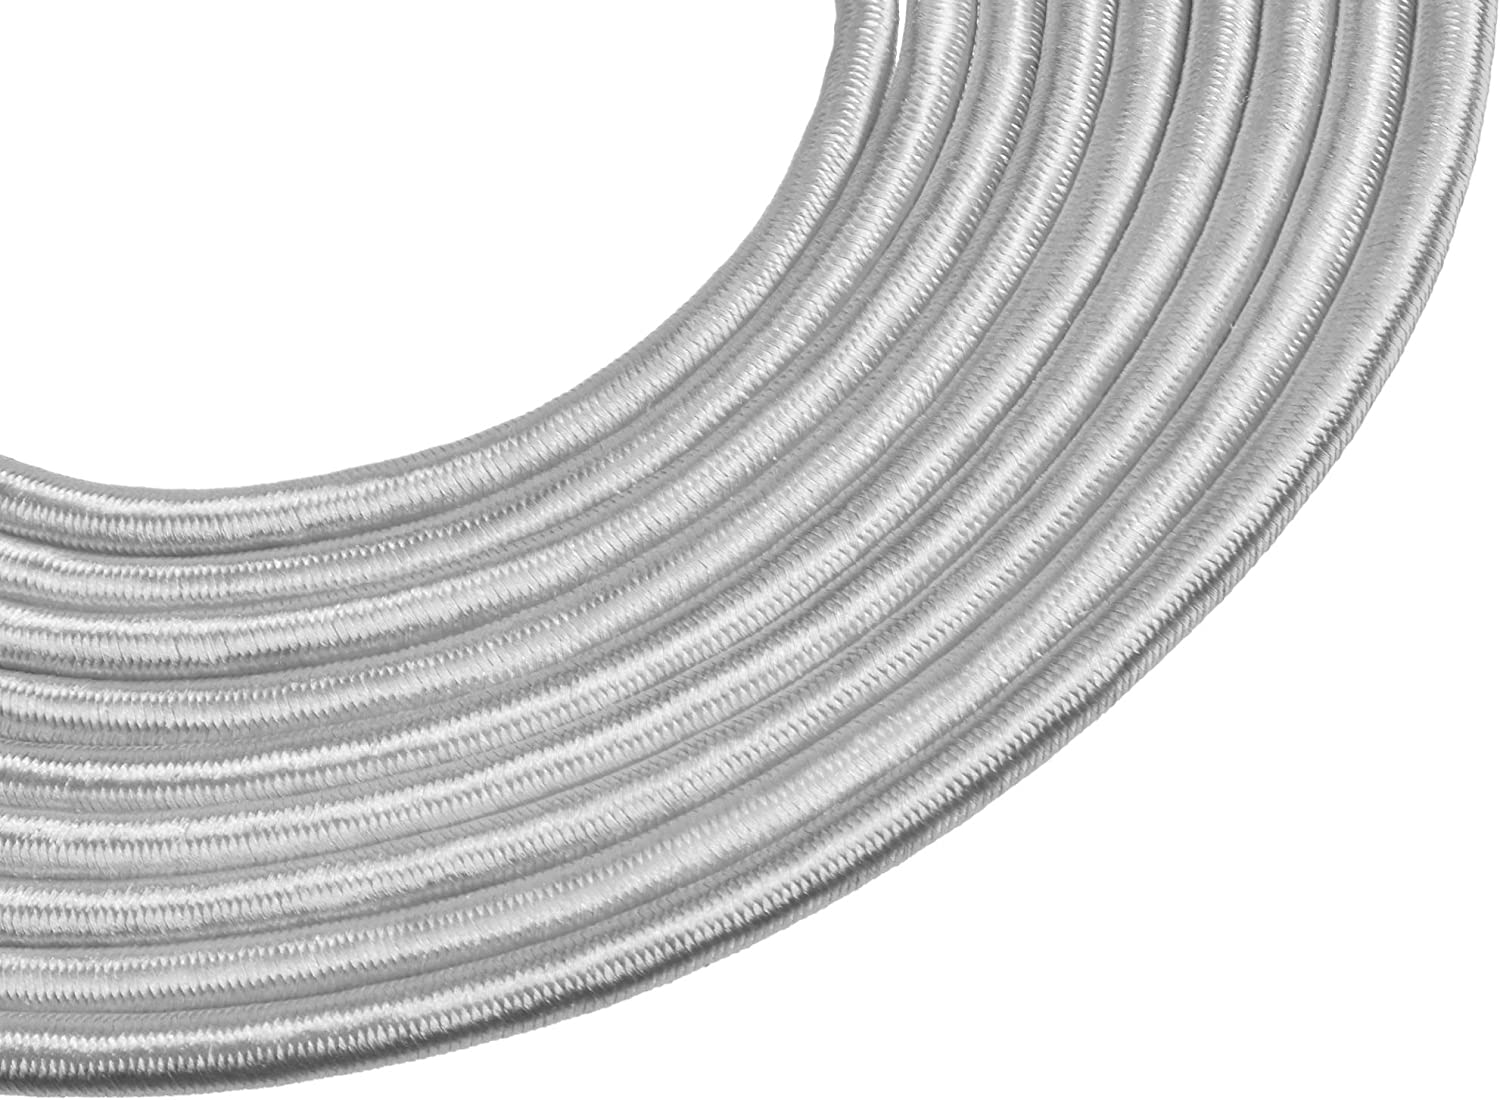 AmazonBasics High-Speed Braided HDMI Cable Silver